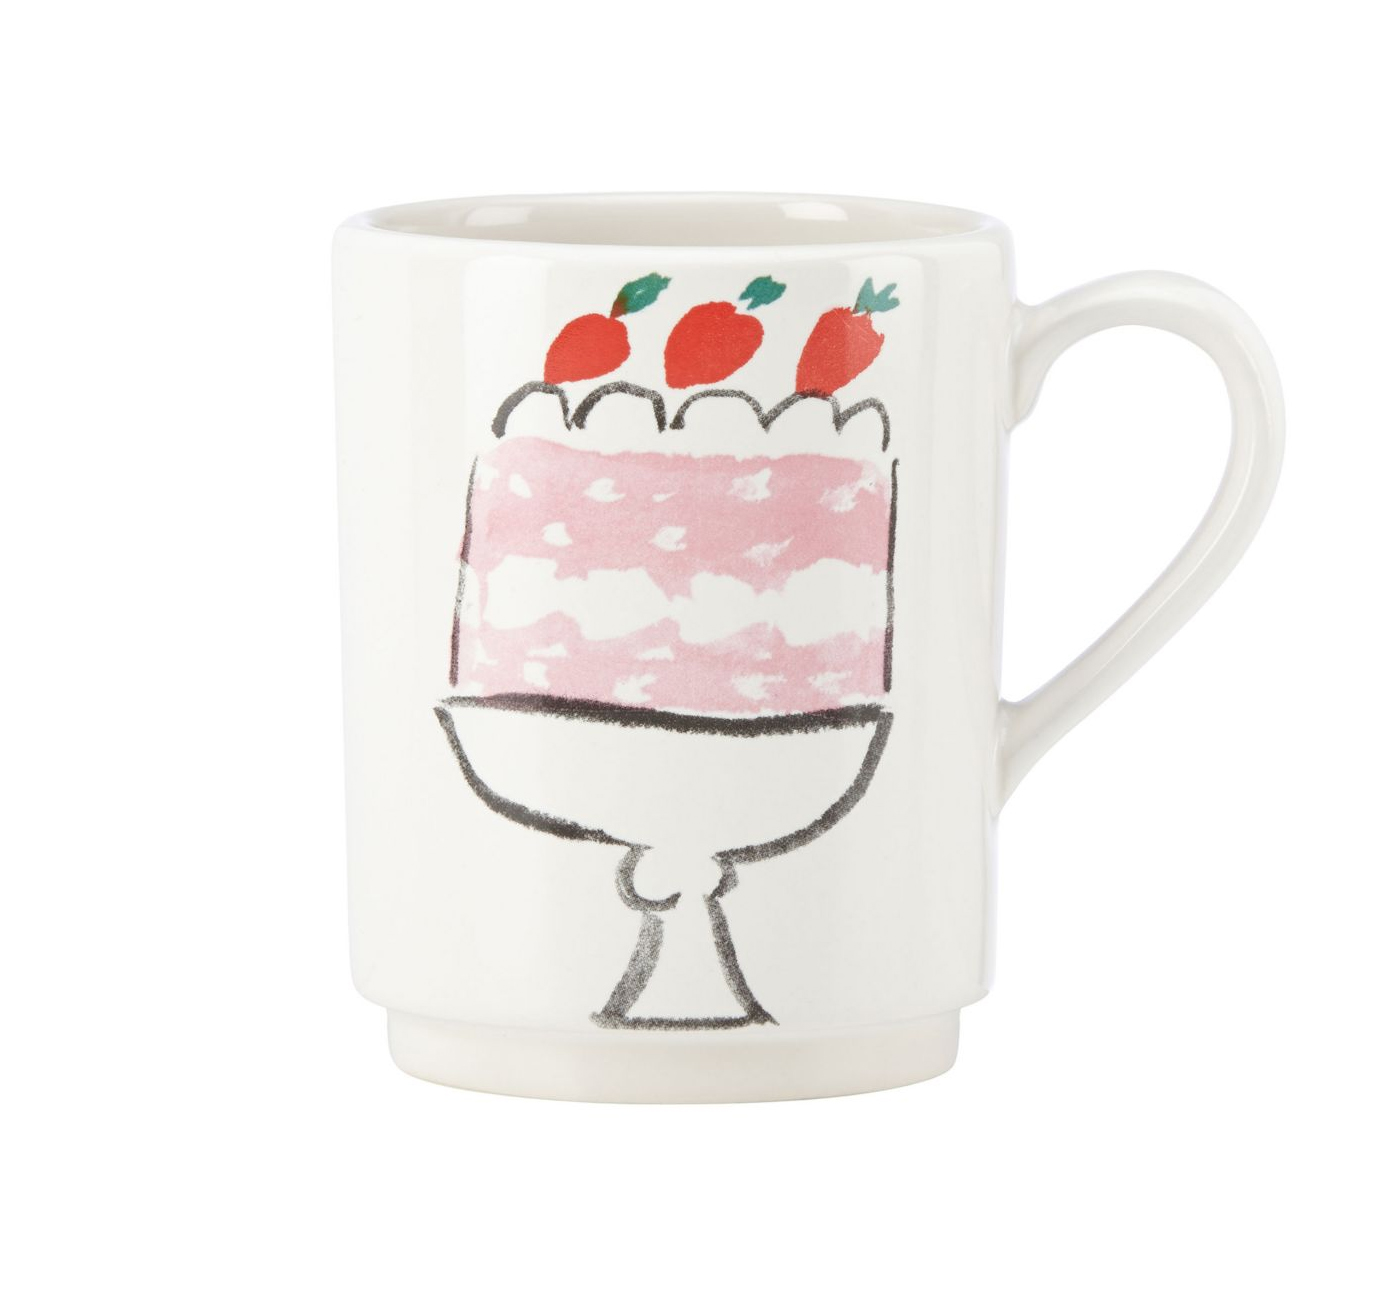 Pretty Pantry Party Mug